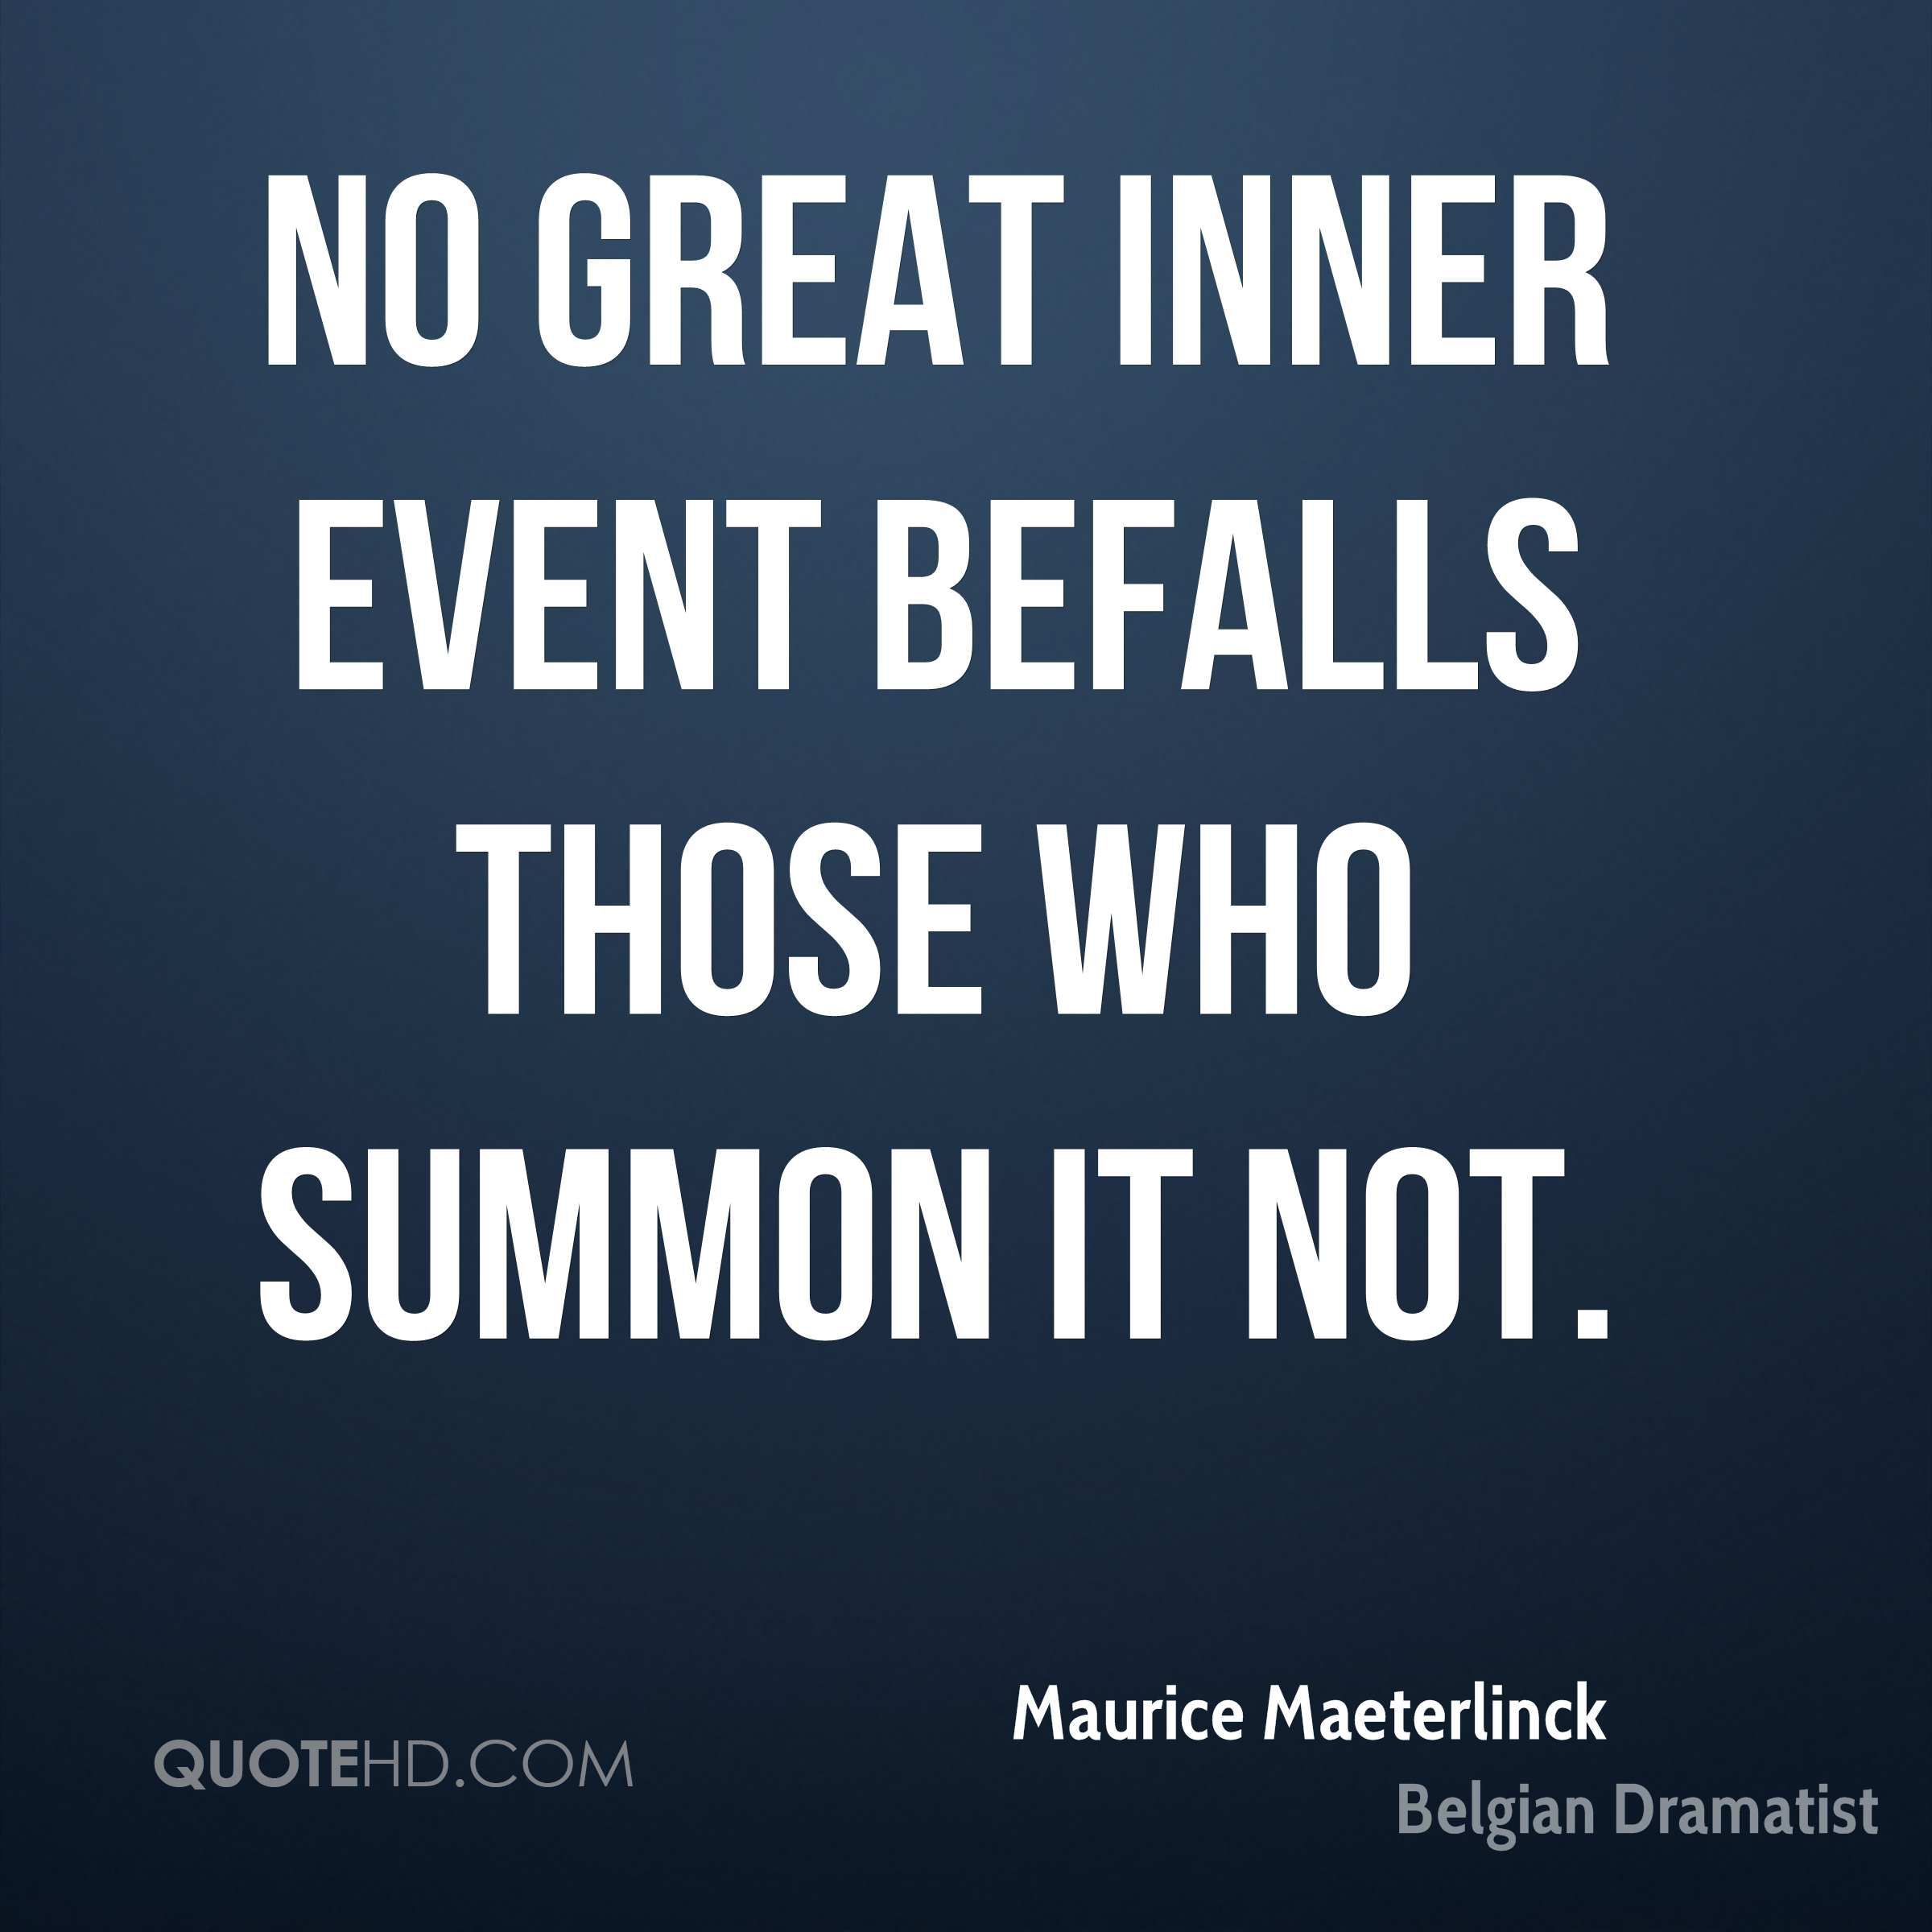 No great inner event befalls those who summon it not.